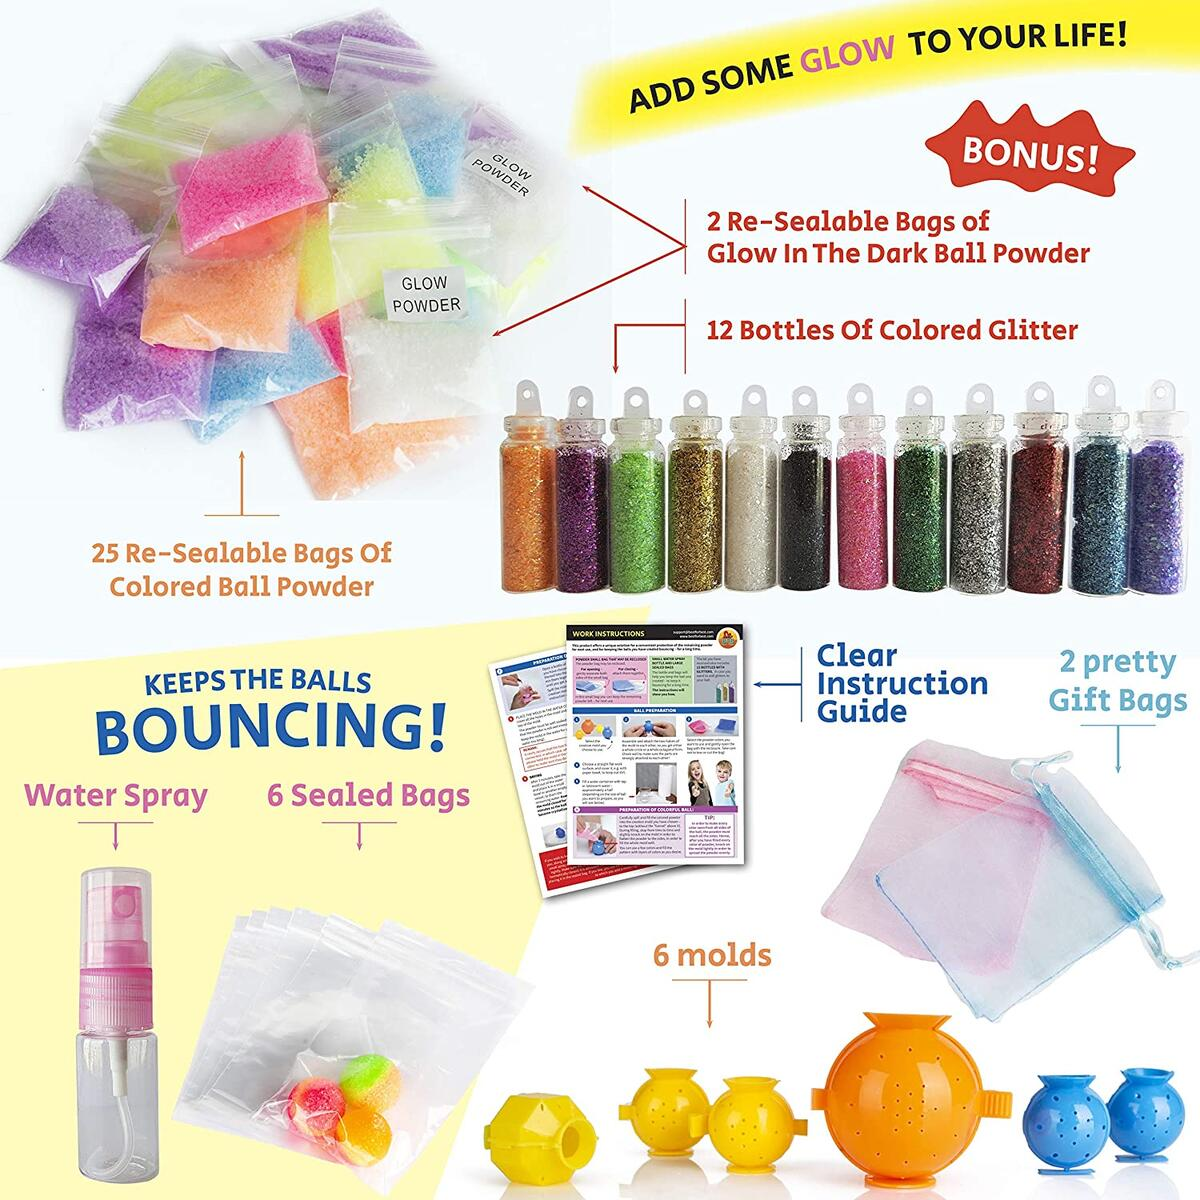 DIY Super Bouncy Balls Kit - Make Your Own Bouncy Balls, Crystal Power Craft Kits for Kids w/Multi-colored and Glow in the Dark Powders, Molds, Glitter, Illustrated Instructions and more - Age 6-12